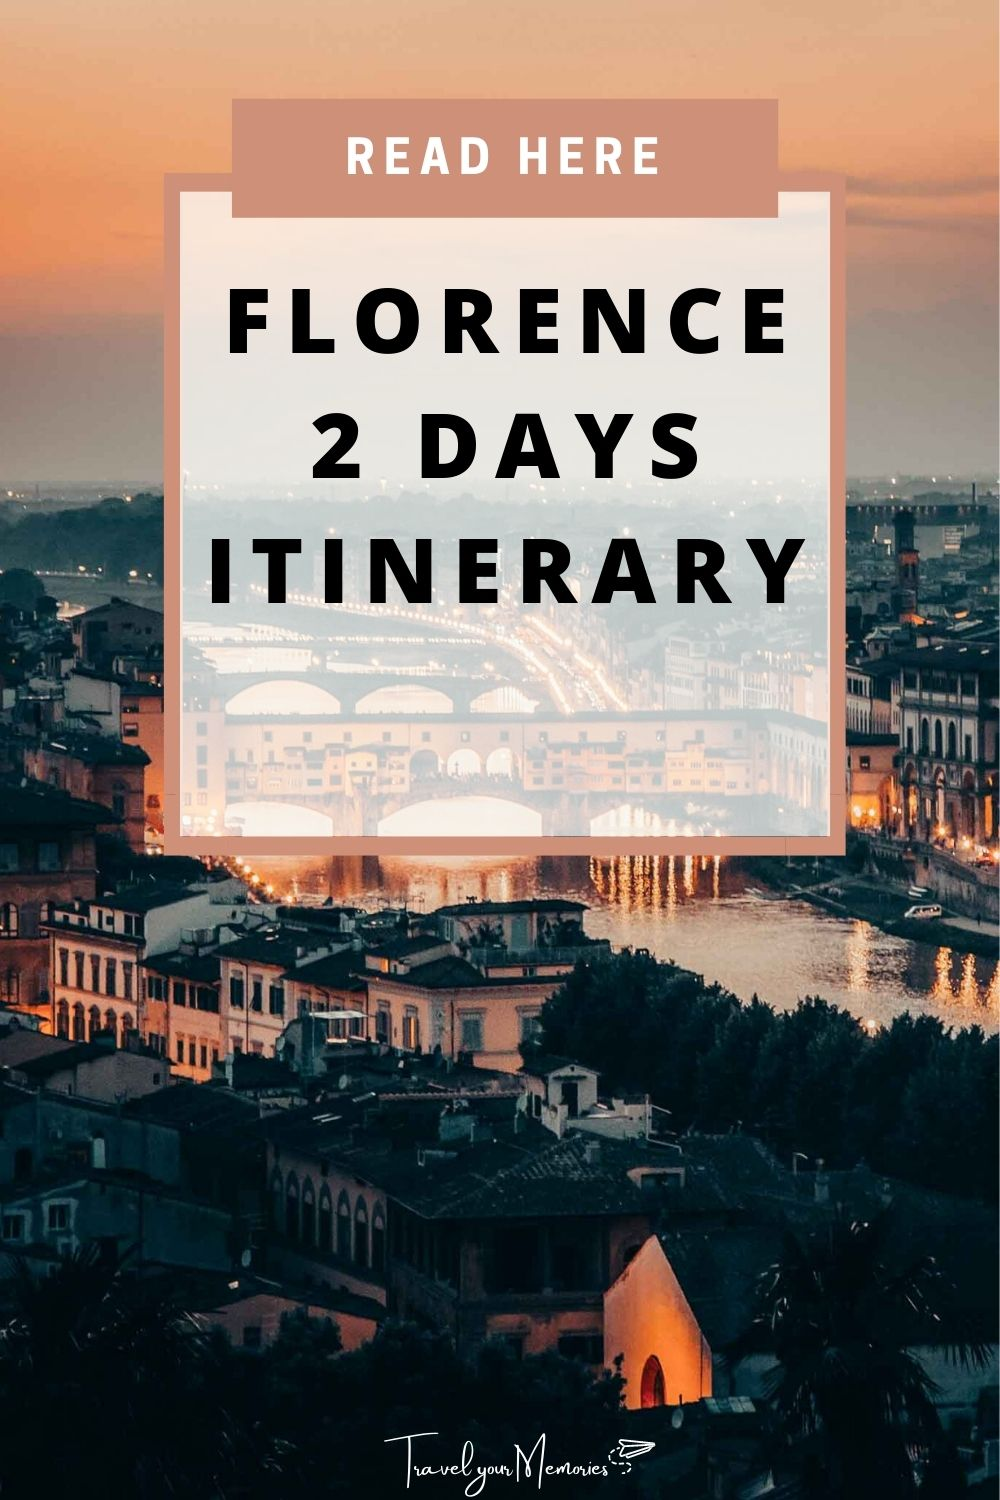 Awesome 2 days in Florence itinerary